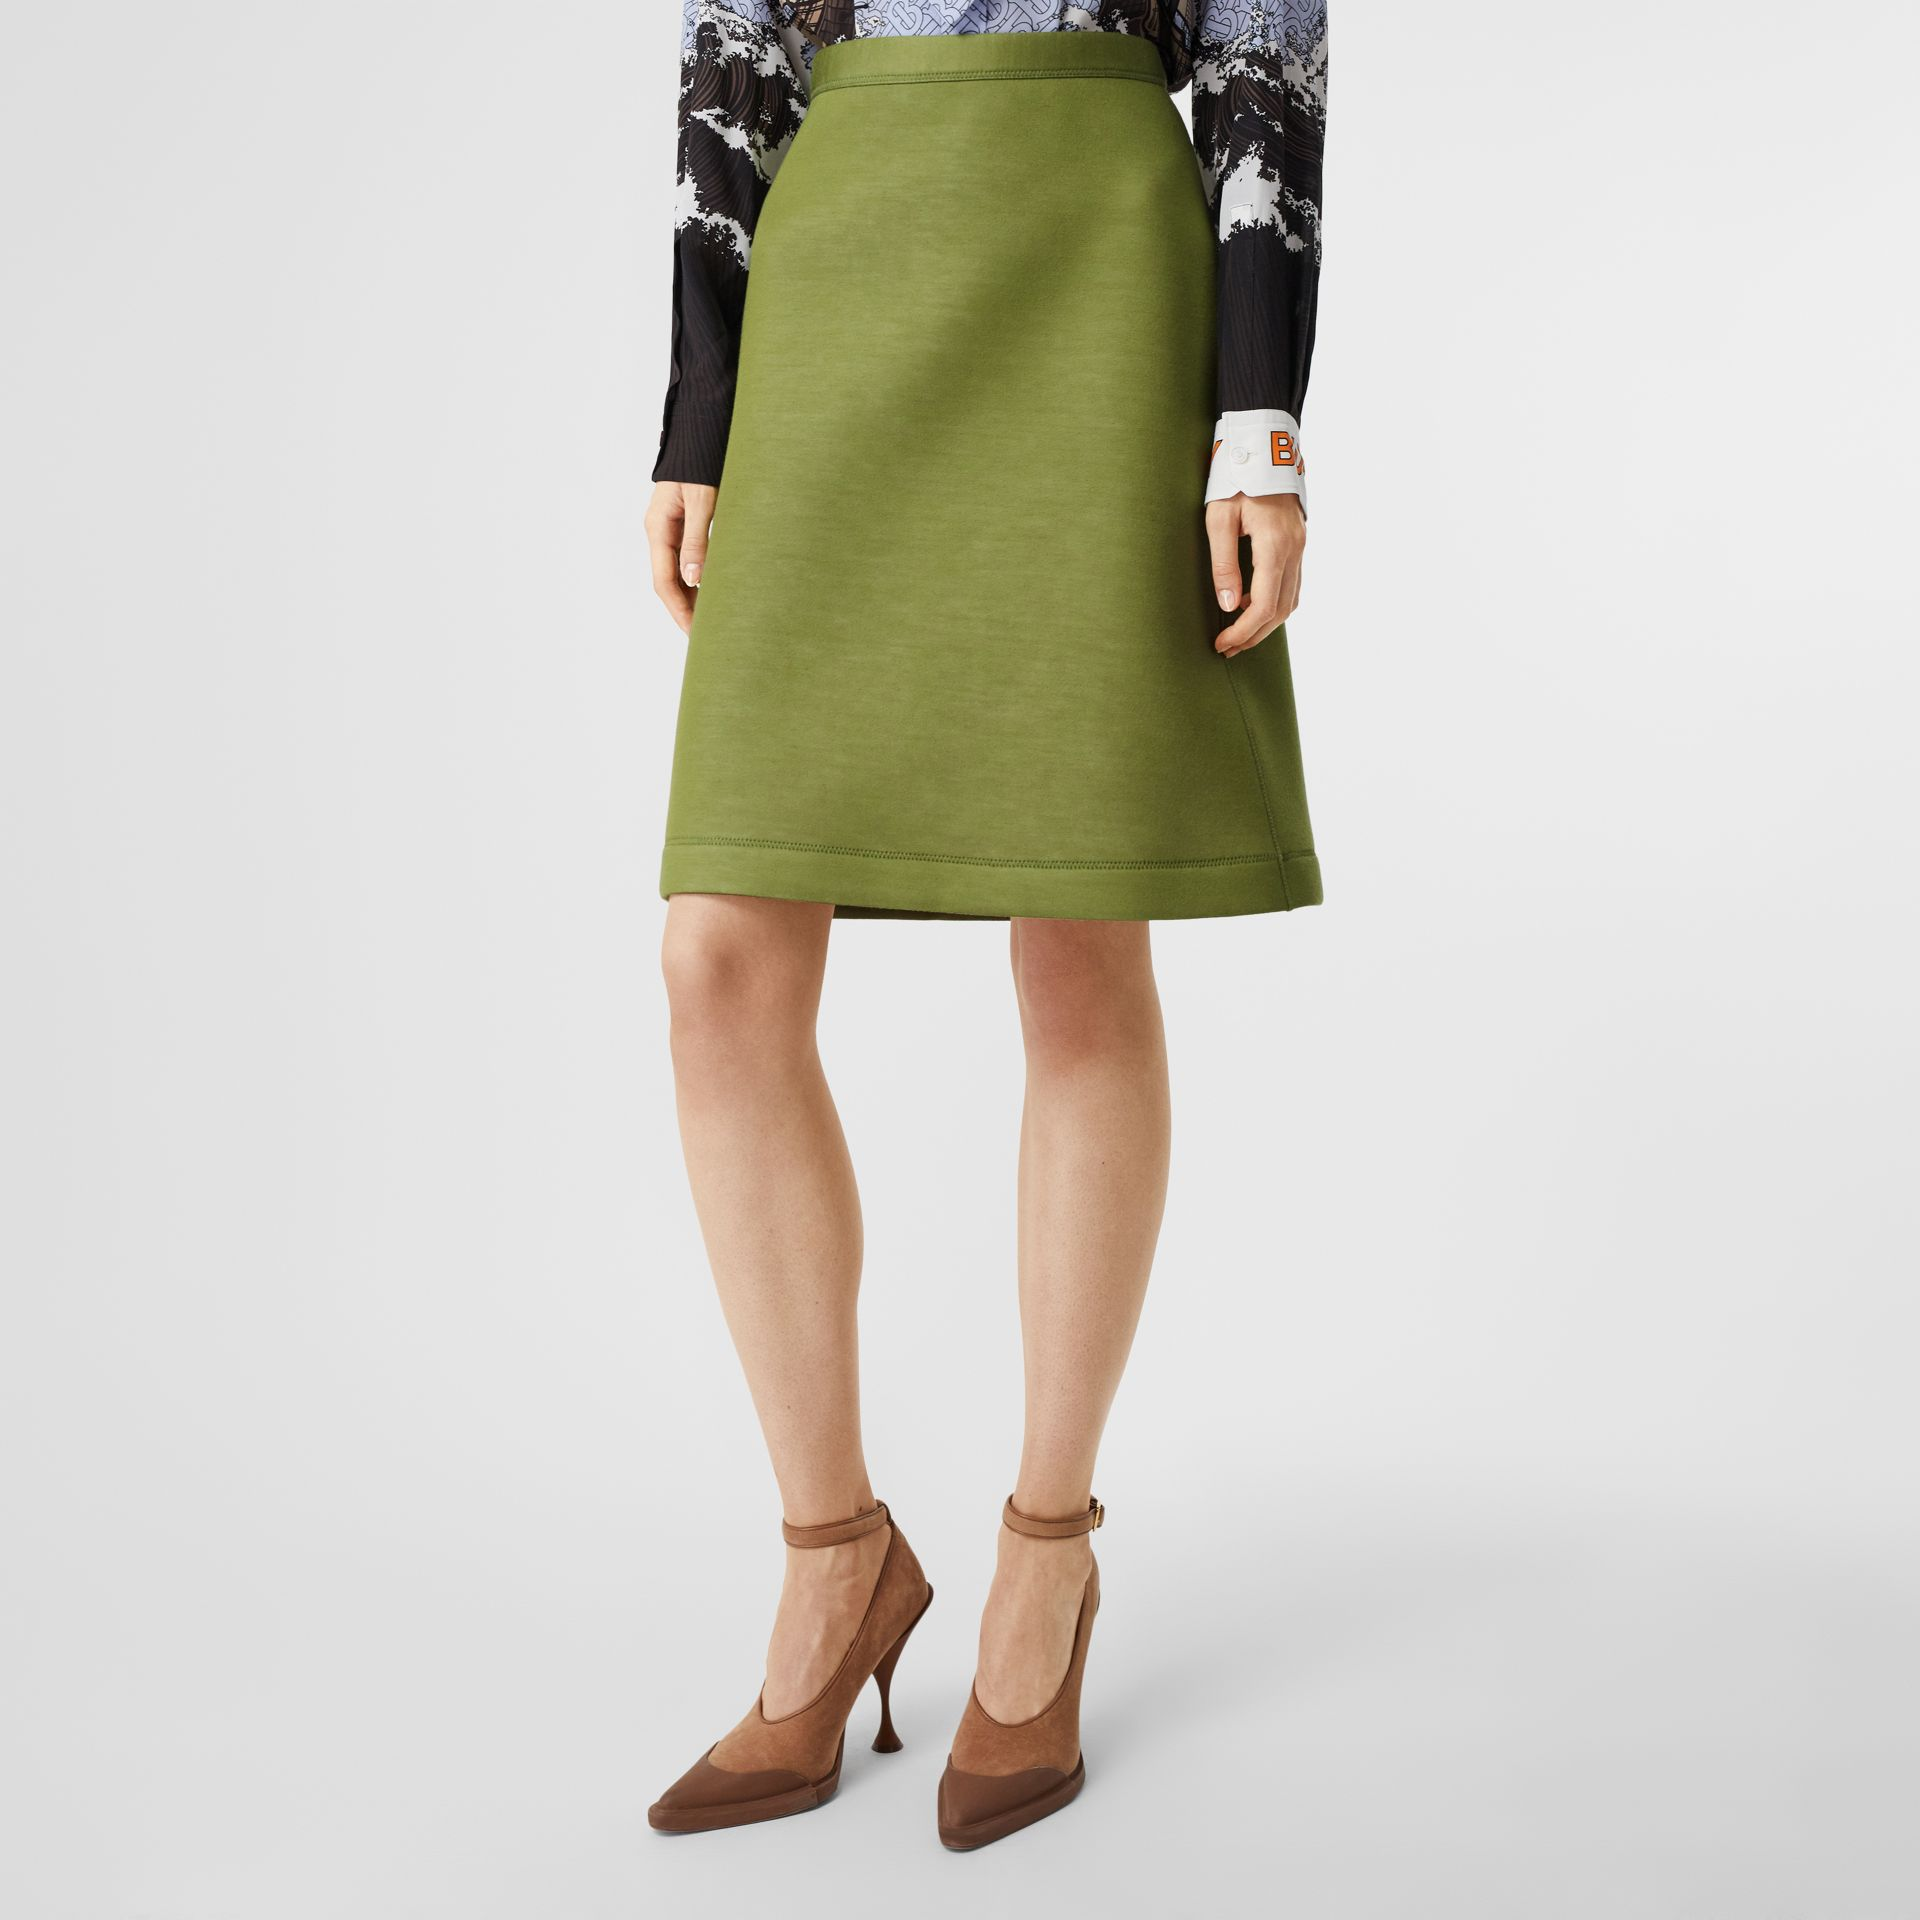 Double-faced Neoprene Skirt in Cedar Green - Women | Burberry United States - gallery image 5